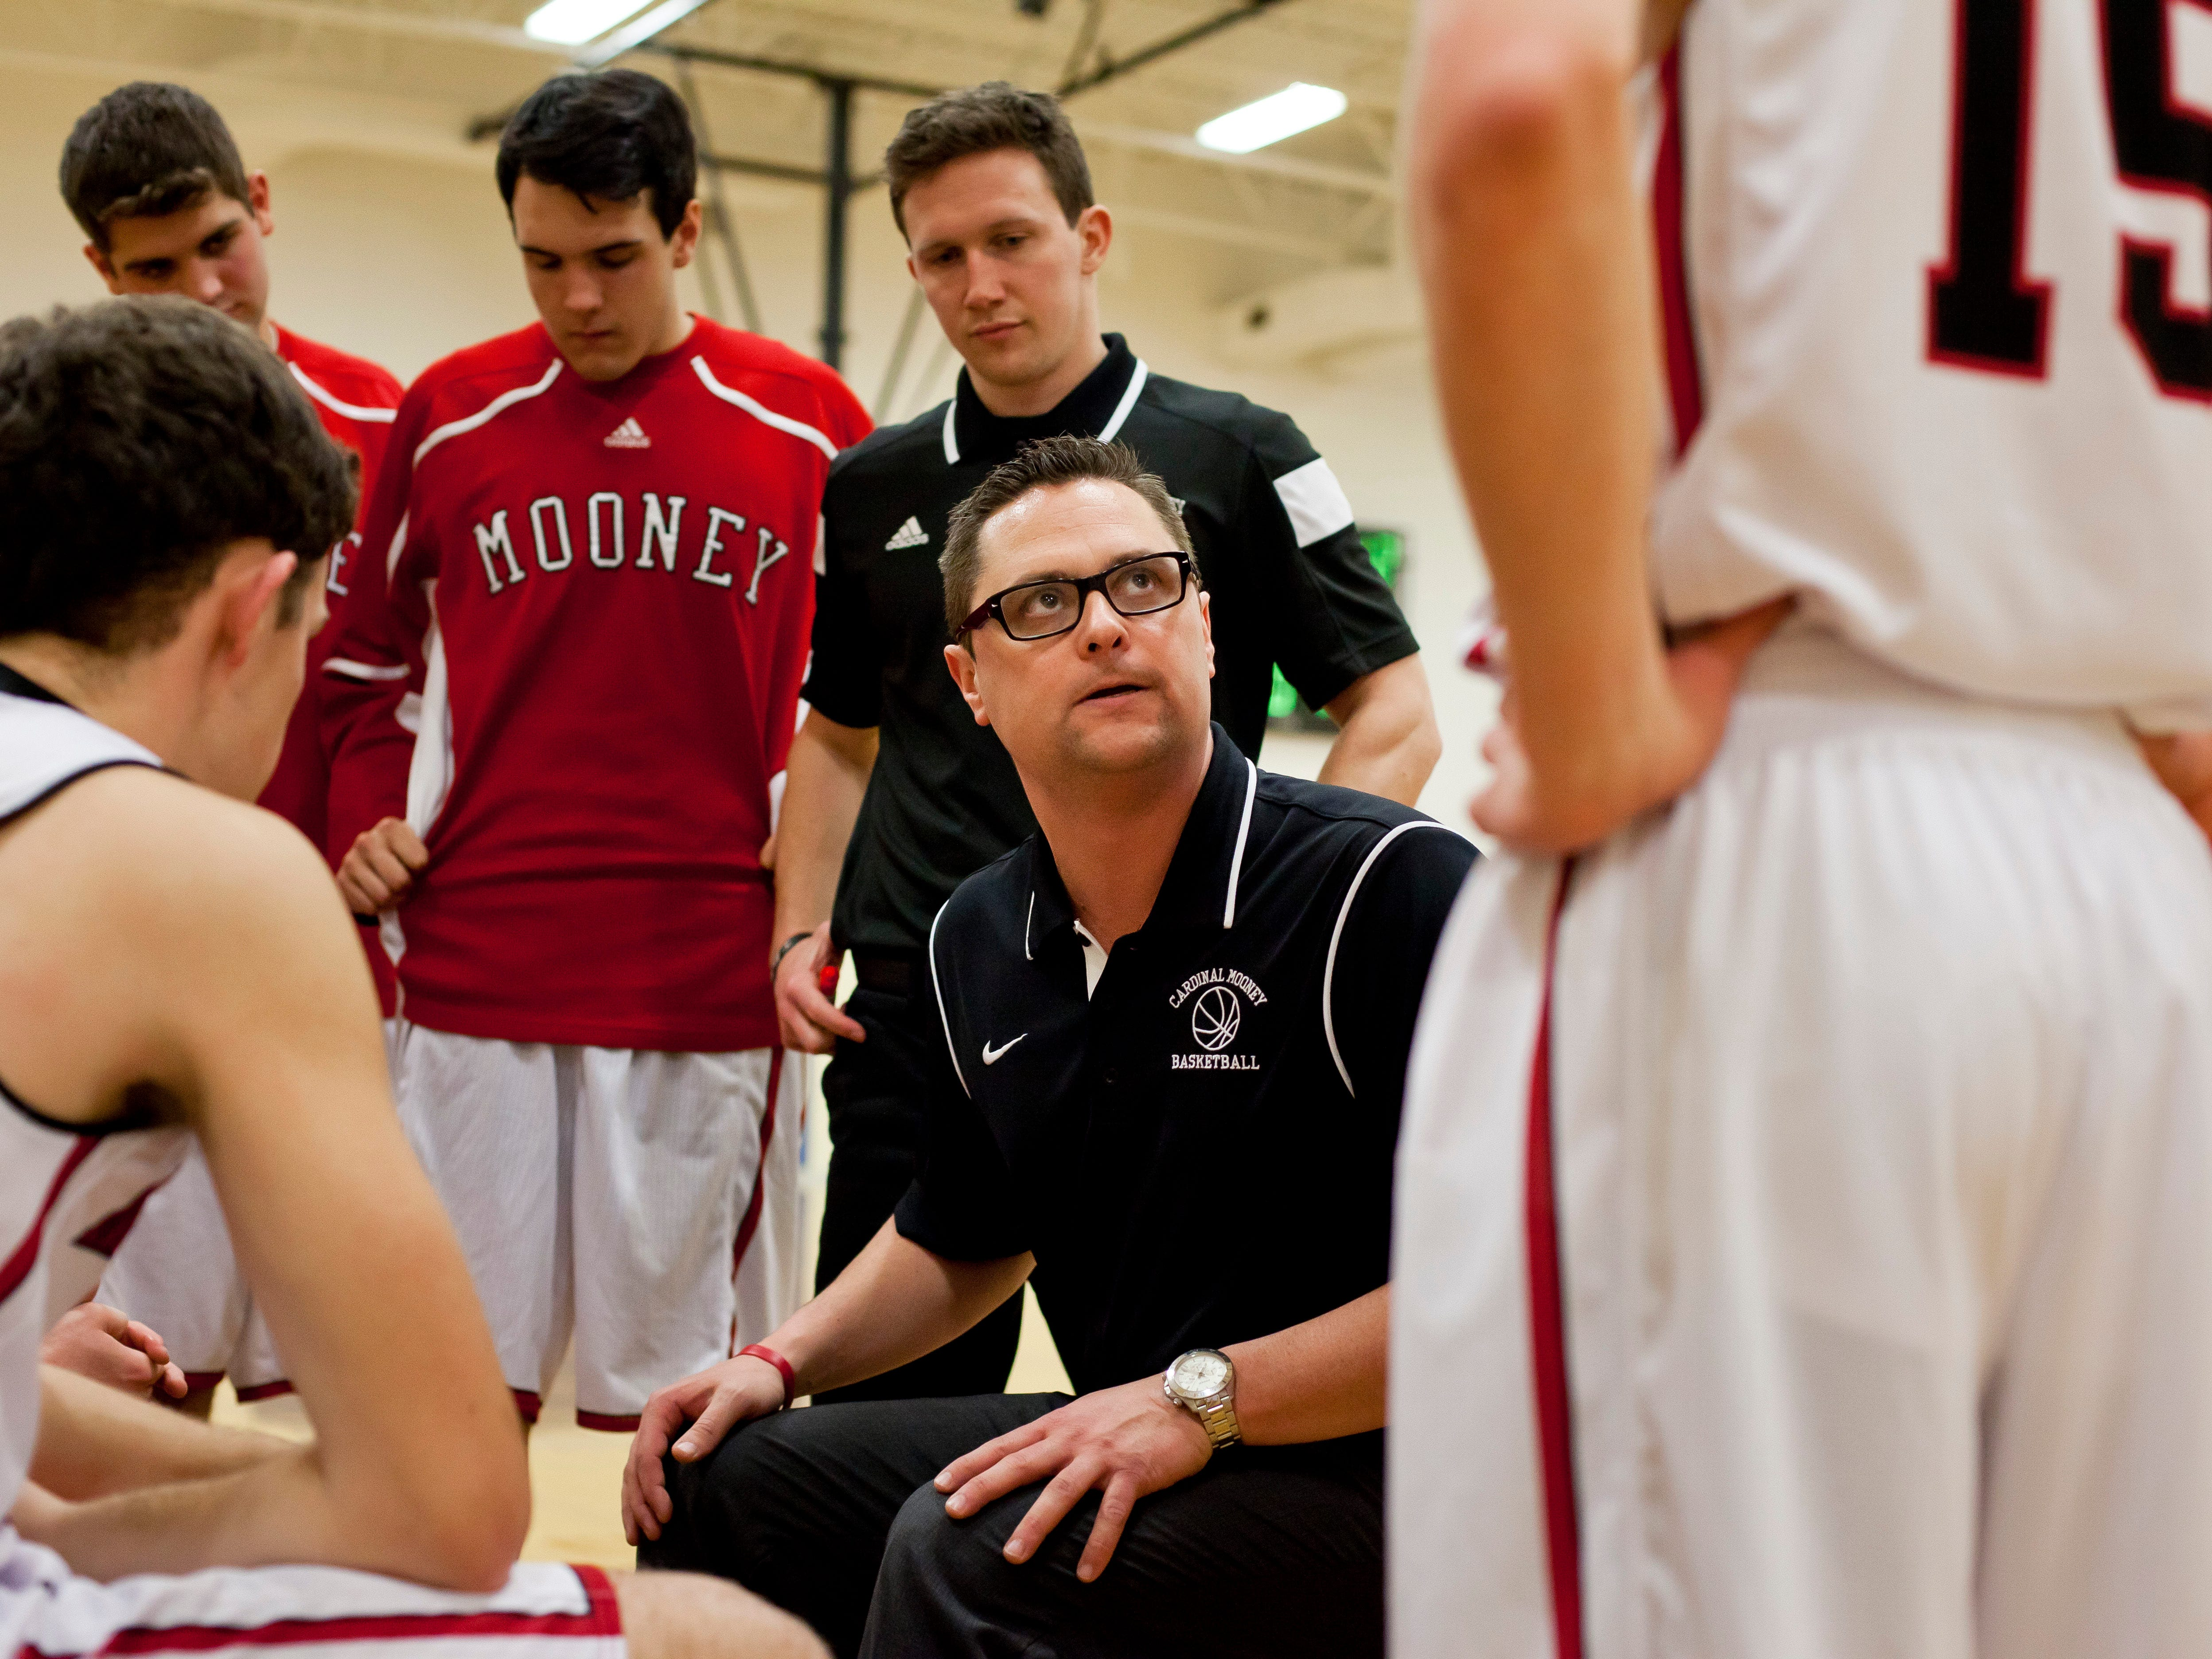 Cardinal Mooney coach Mike McAndrews talks with players in a time out during a basketball game Tuesday, Feb. 17, 2015 at Cardinal Mooney High School in Marine City.